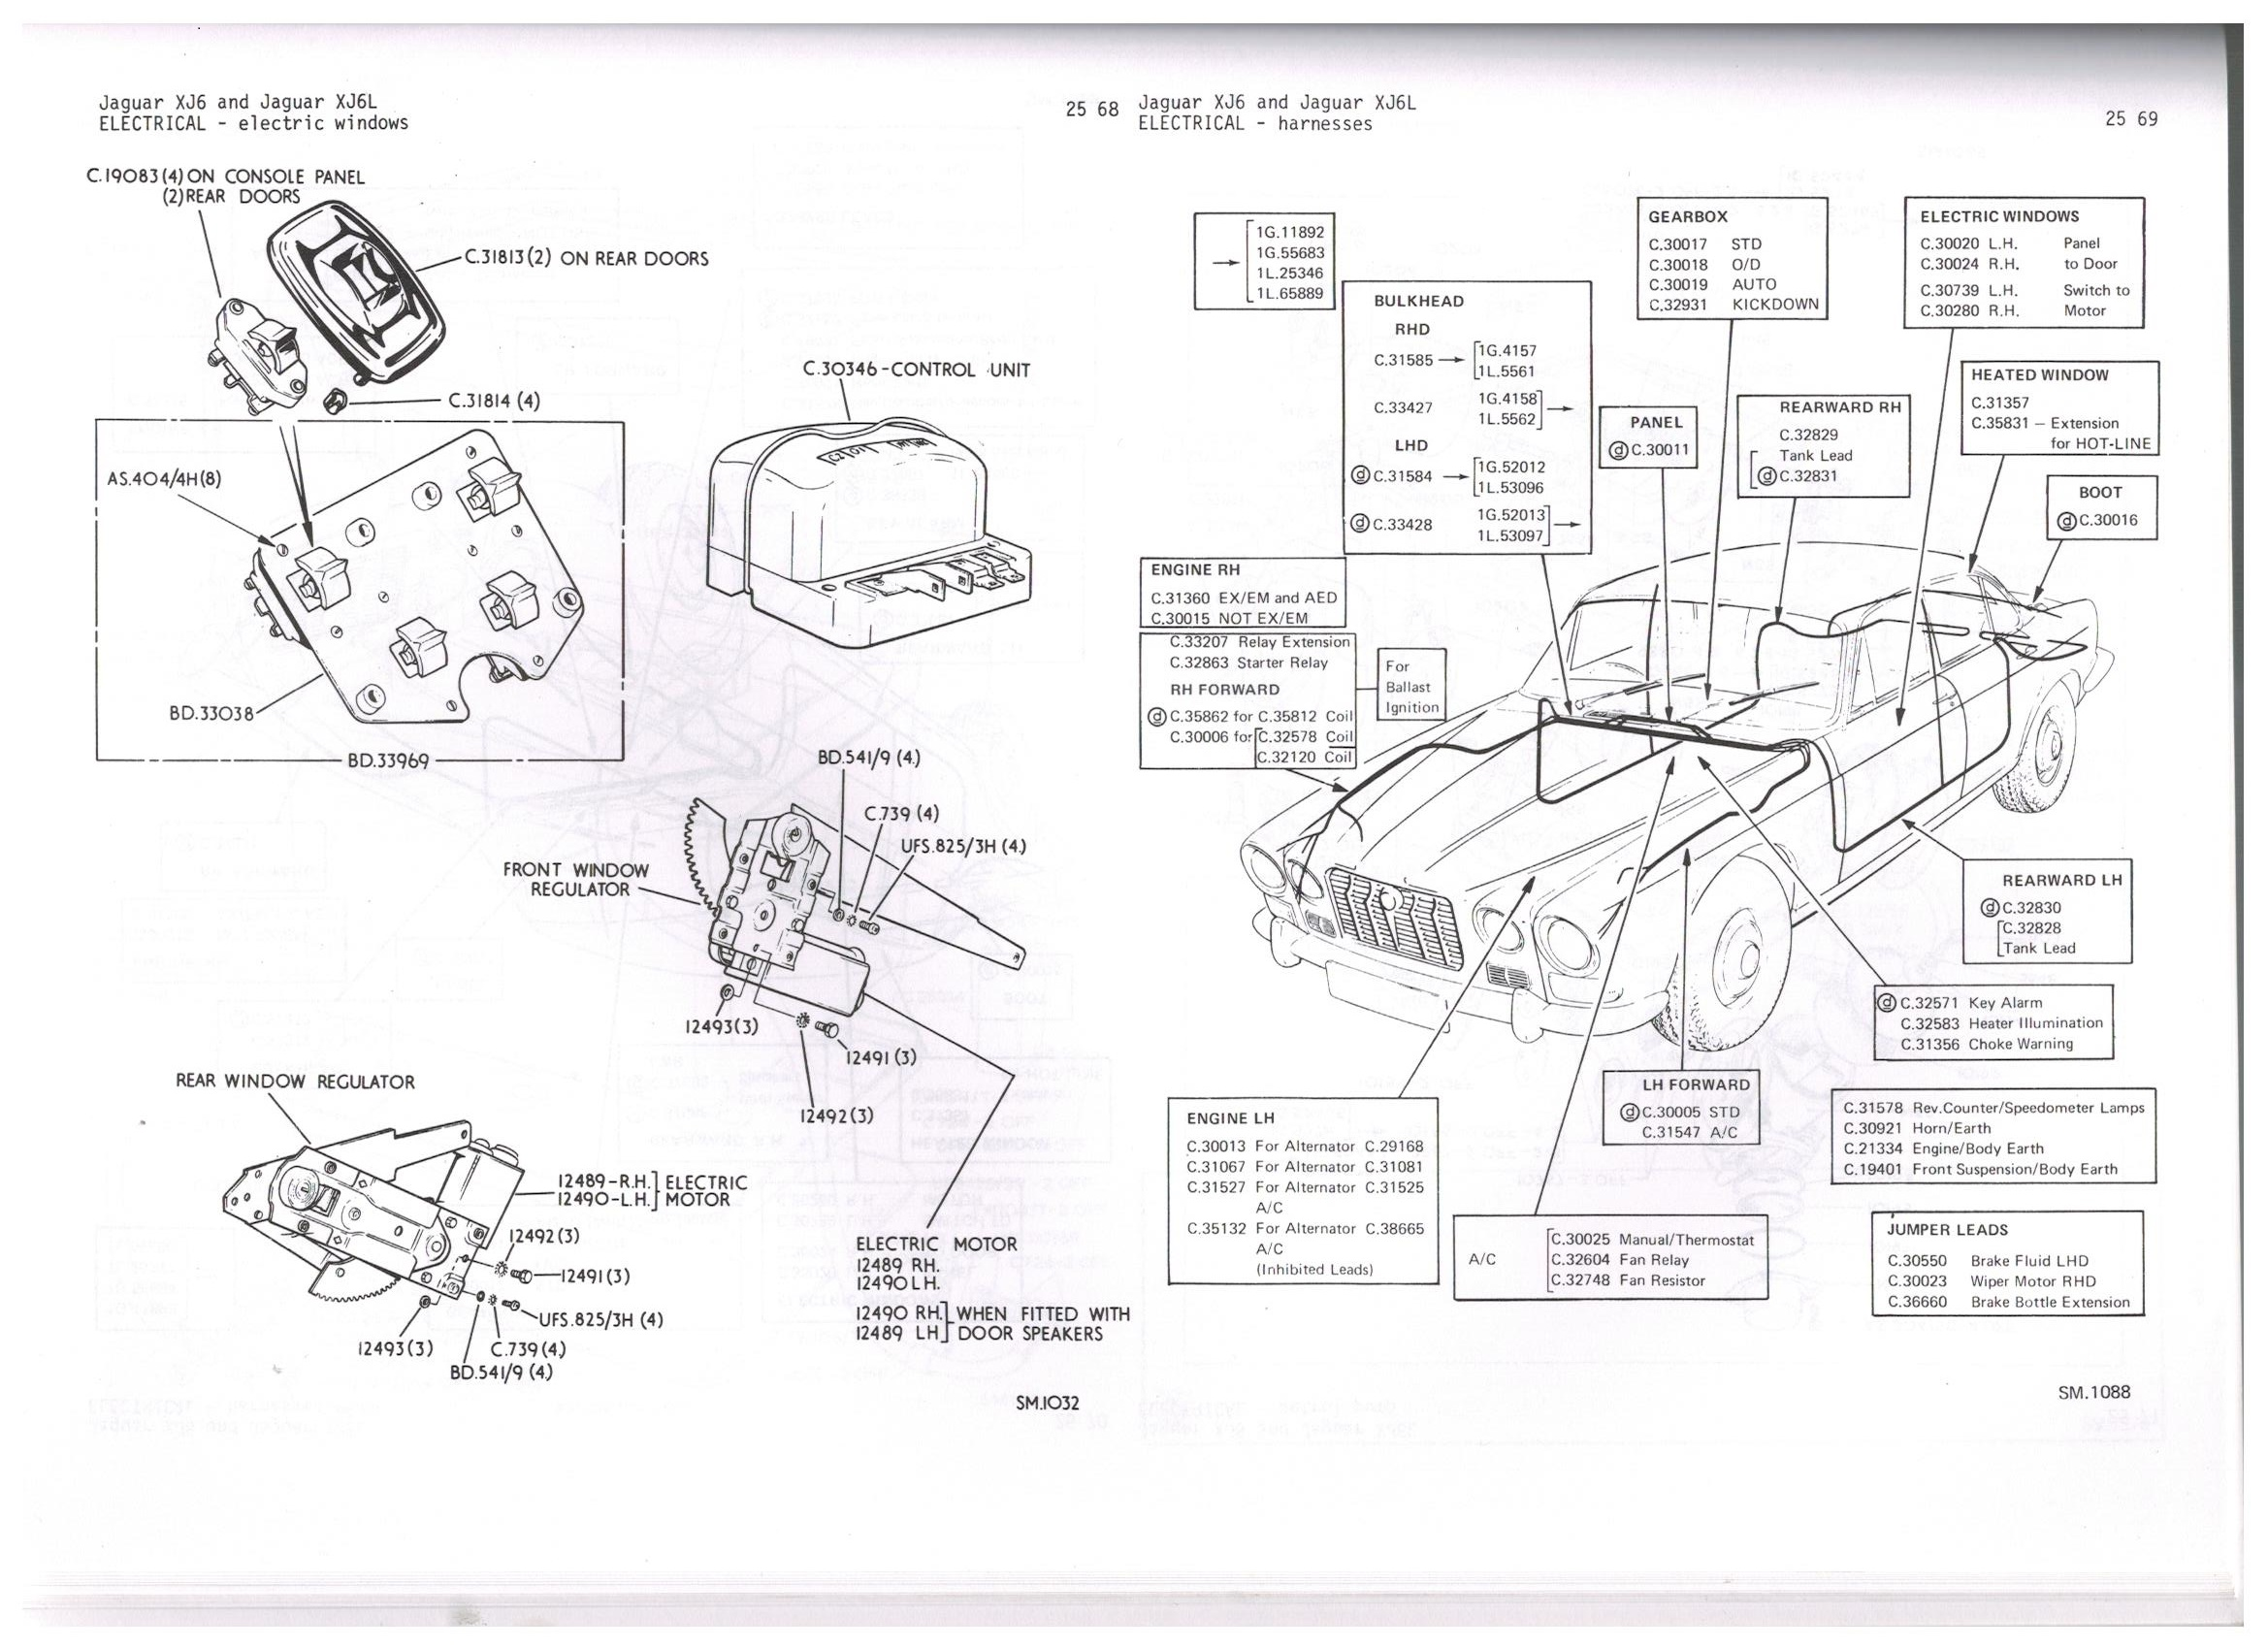 1985 jaguar xjs fuse box diagram